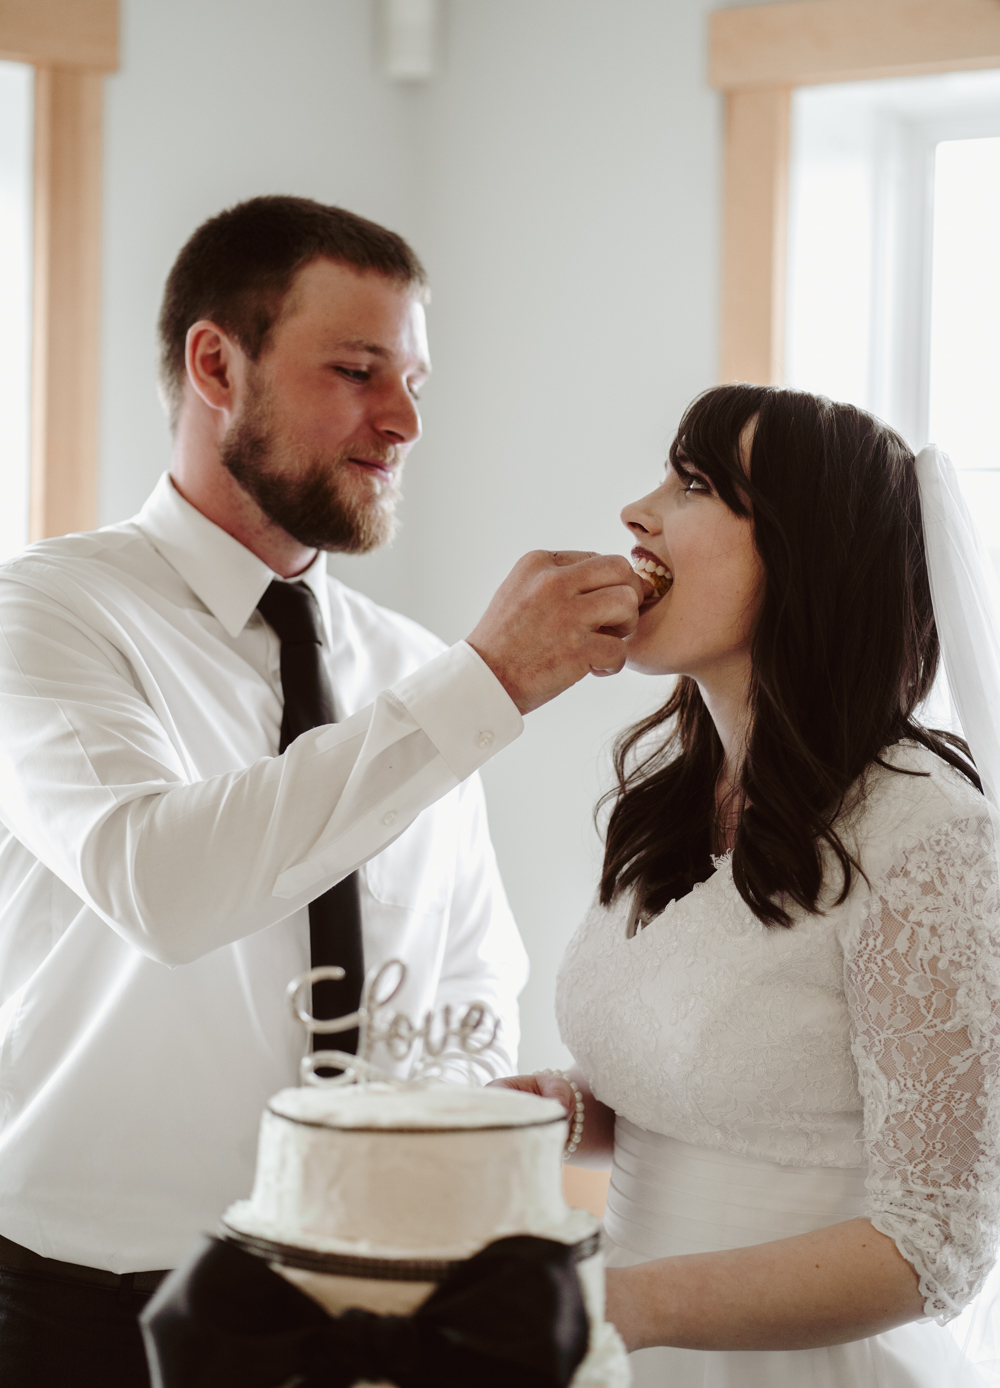 One thing Joe and I both felt strongly about was that he was not going to smash cake into my face. That face went through a lot to look decent on our wedding day. ;) So in this picture he's gently putting cake into my mouth. He's nice. I'm glad I married him.